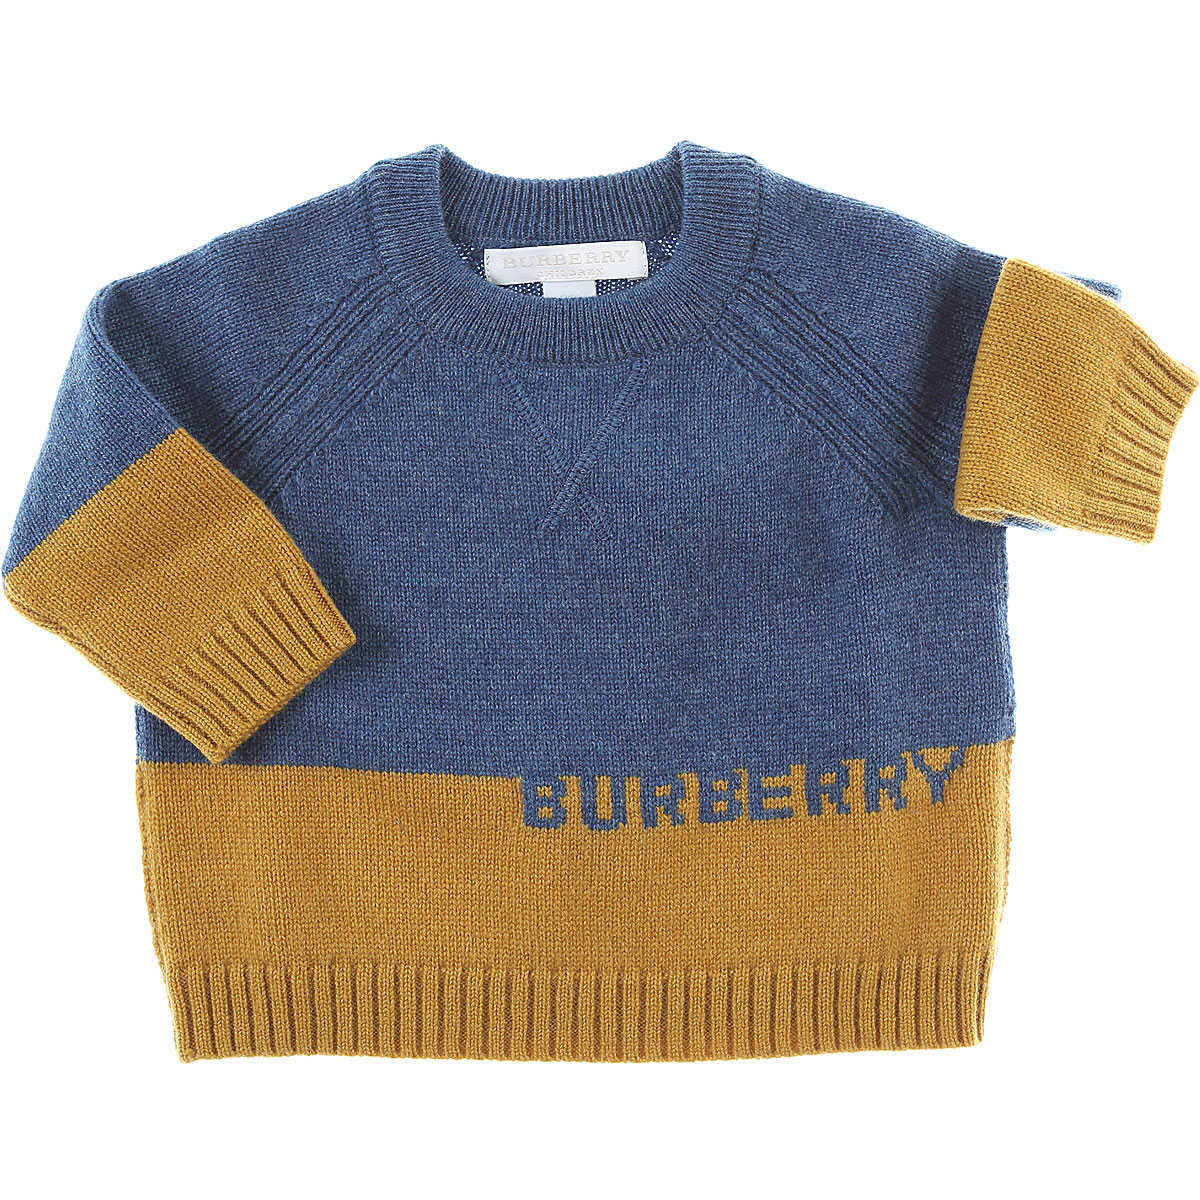 Burberry Baby Sweaters for Boys Blue USA - GOOFASH